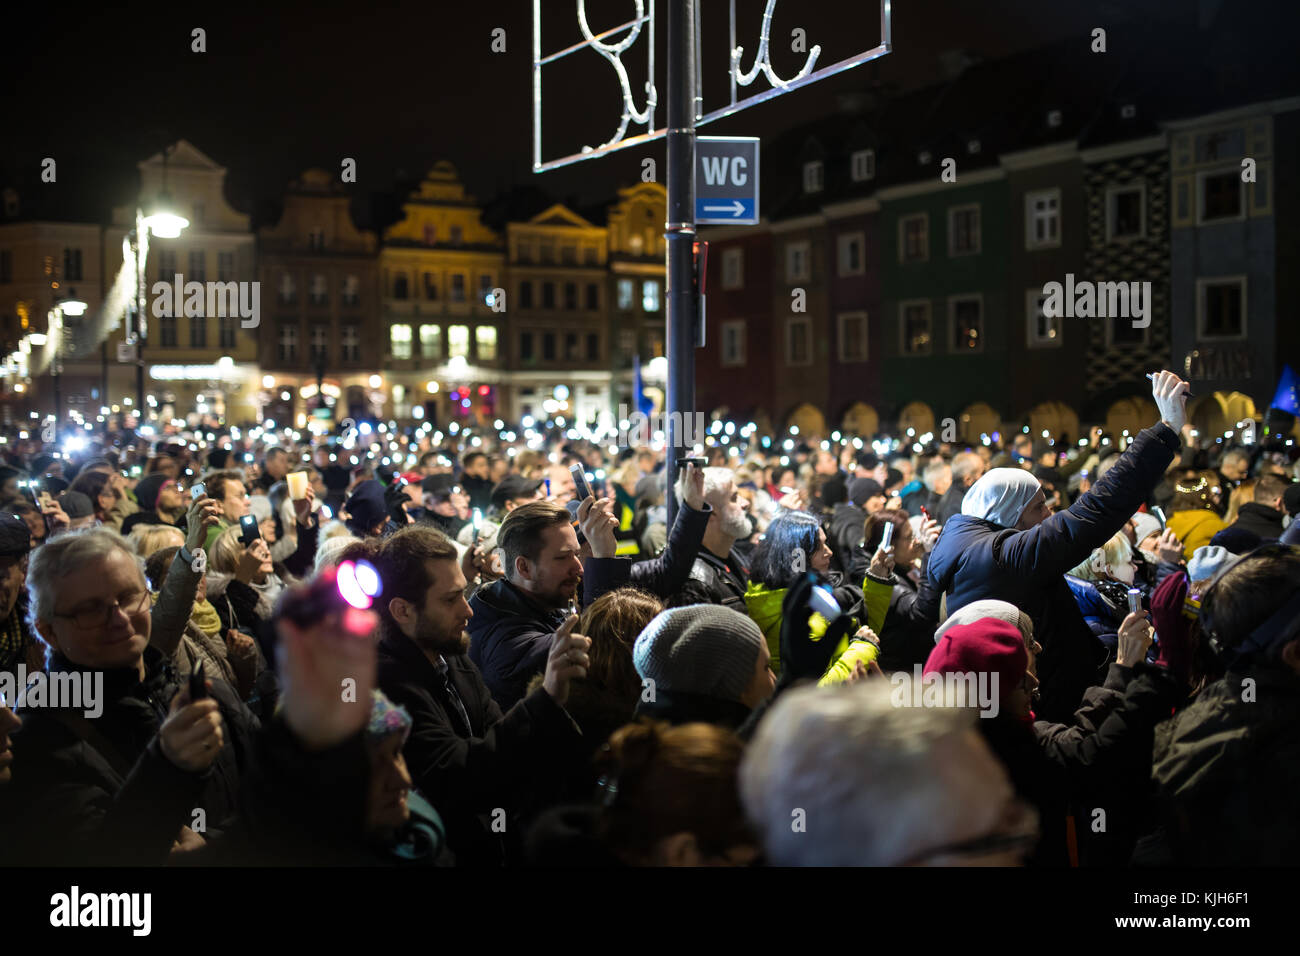 Poland, Poznan, 11.24.2017: Lights for judiciary - protest against violation the constitutional law in Poland, by - Stock Image